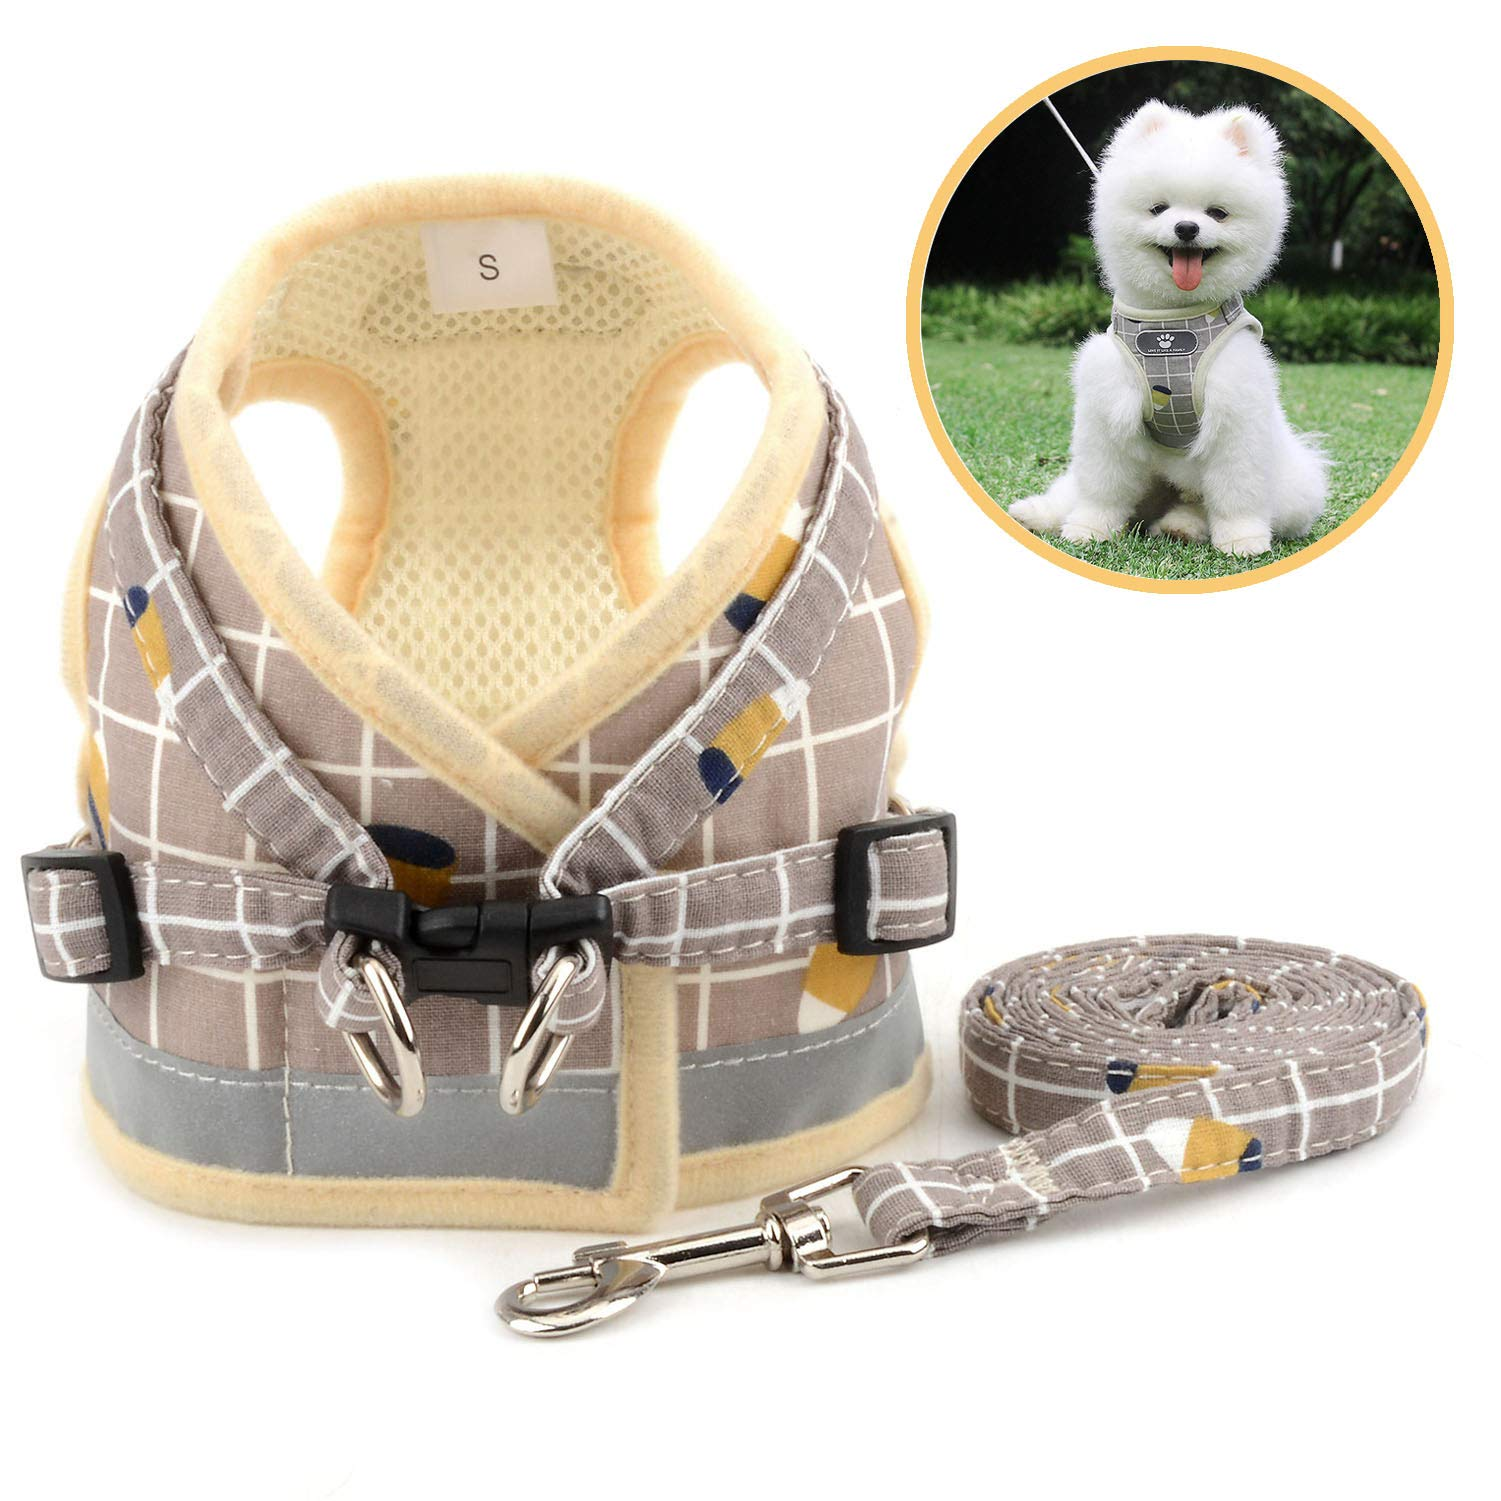 Zunea No Pull Small Dog Harness and Leash Set Adjustable Reflective Step-in Chihuahua Vest Harnesses Mesh Padded Plaid Escape Proof Walking Puppy Jacket for Boy Girl Pet Dogs Cats